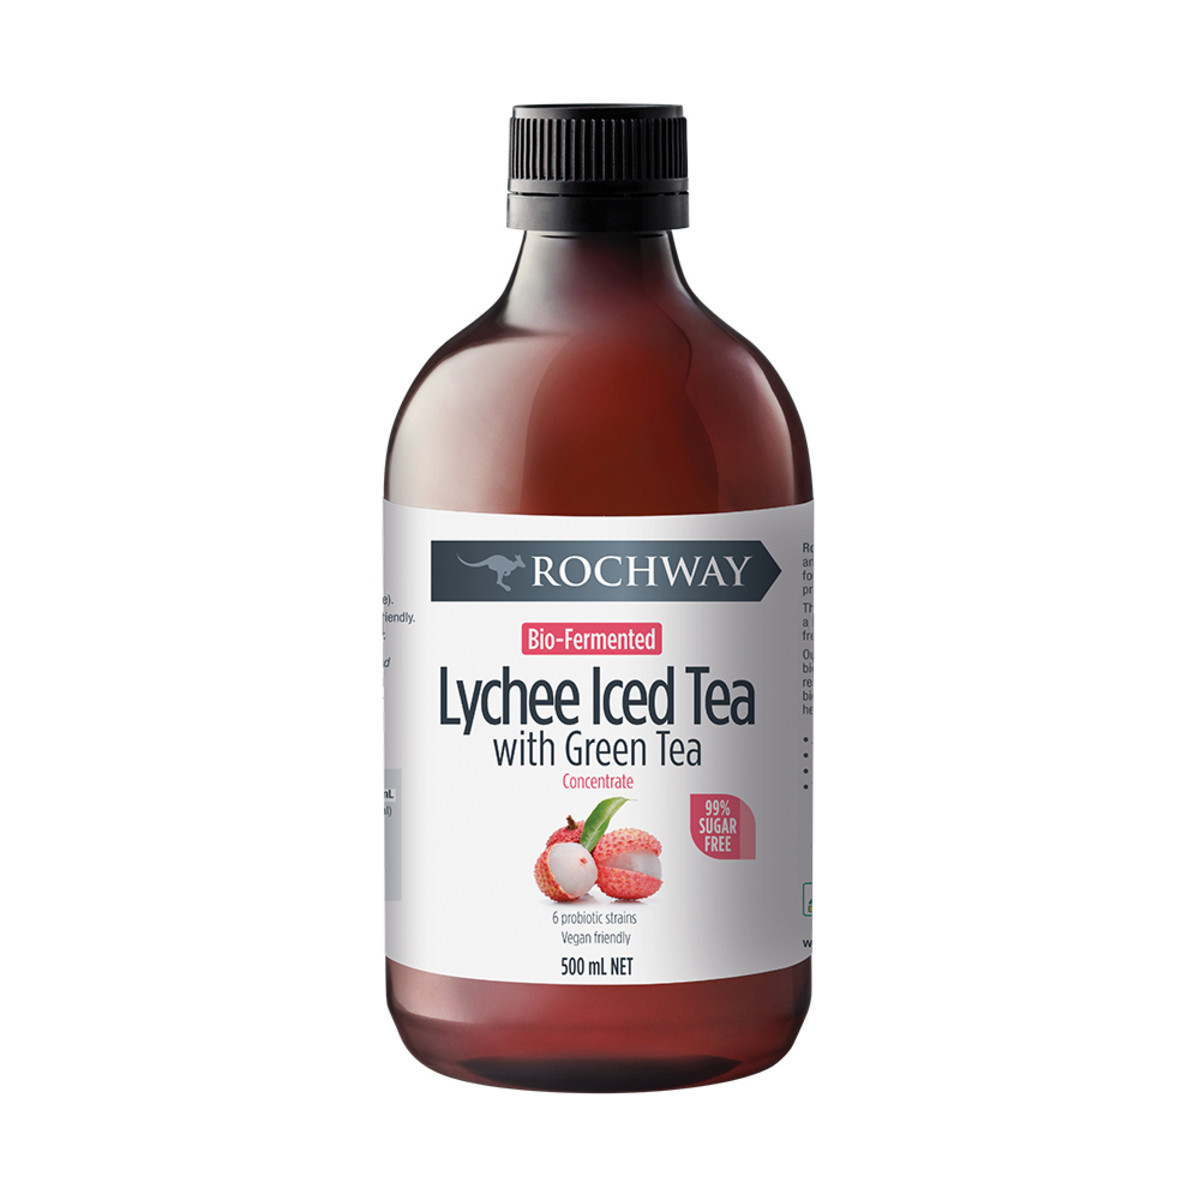 Rochway BioFermented Concentrate Lychee Iced Tea 500ml_media-01